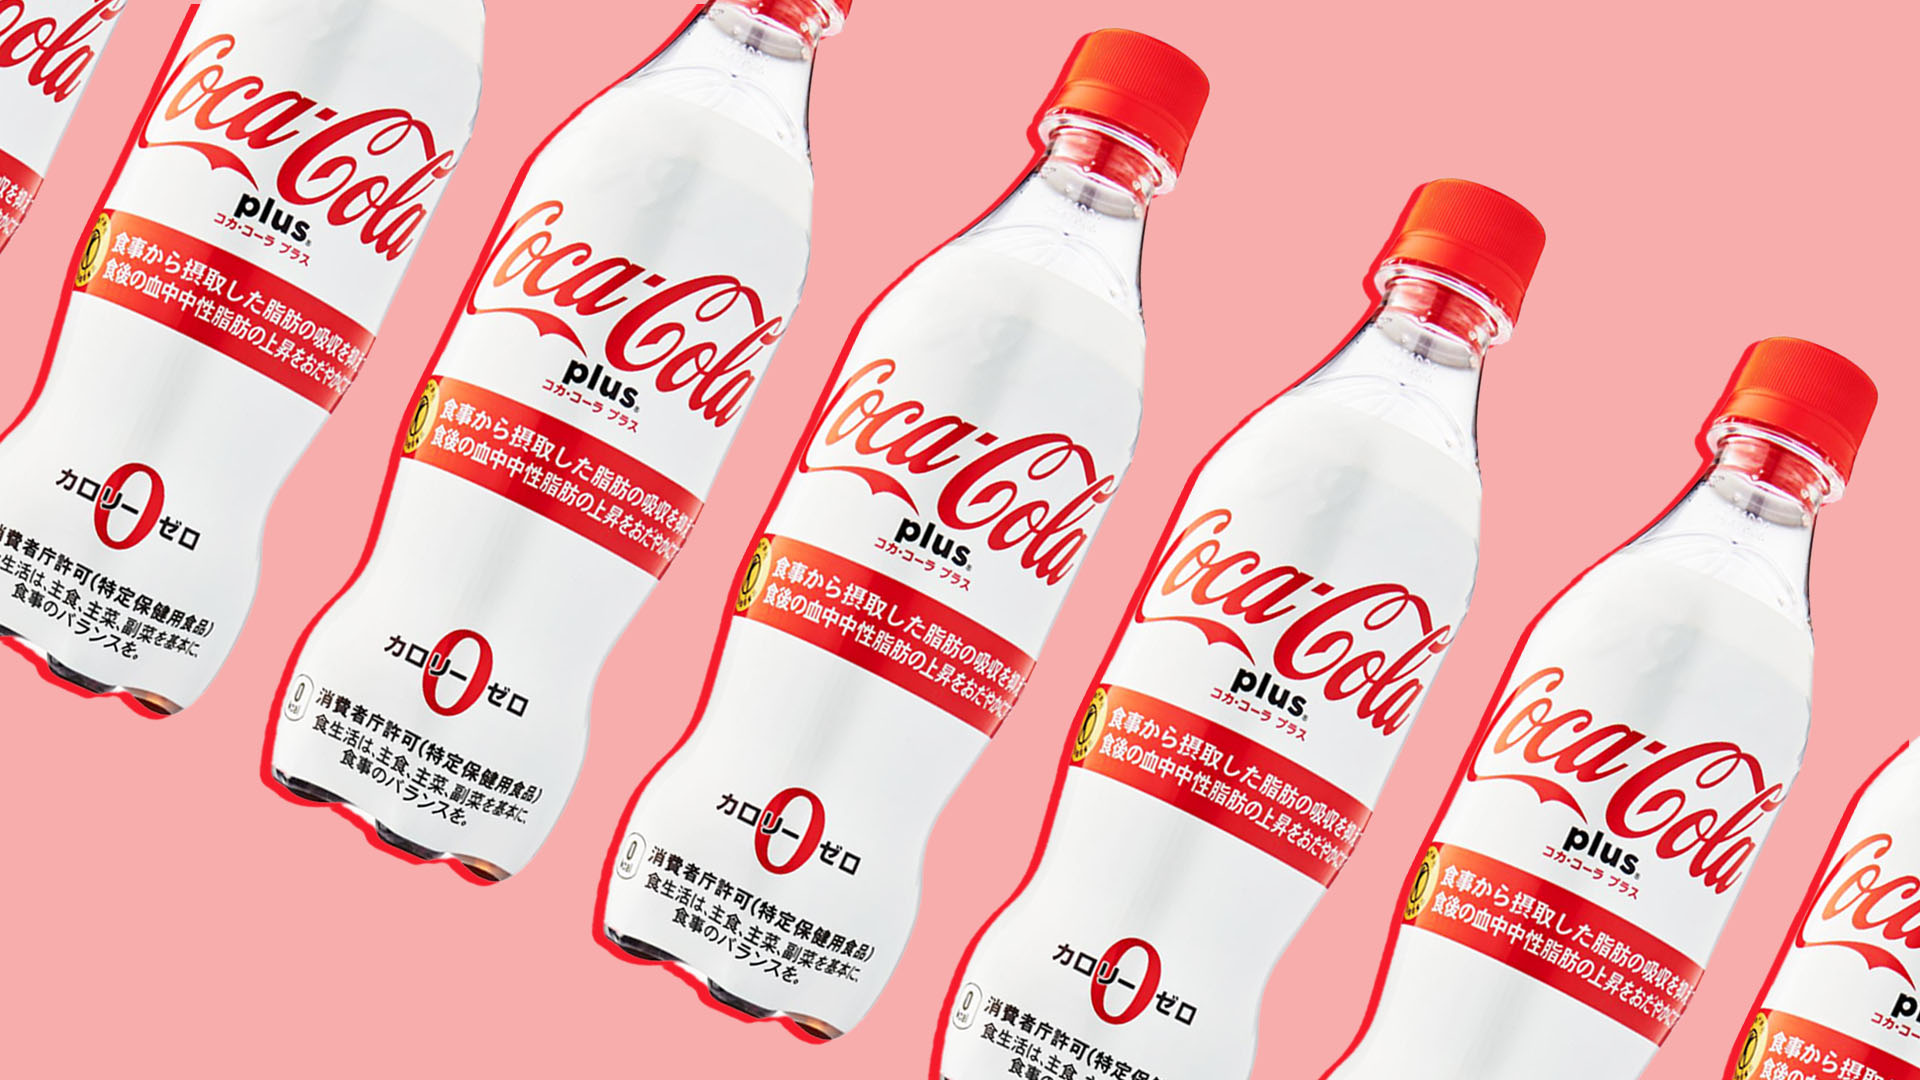 Japan's Coca-Cola Plus has an unexpected ingredient